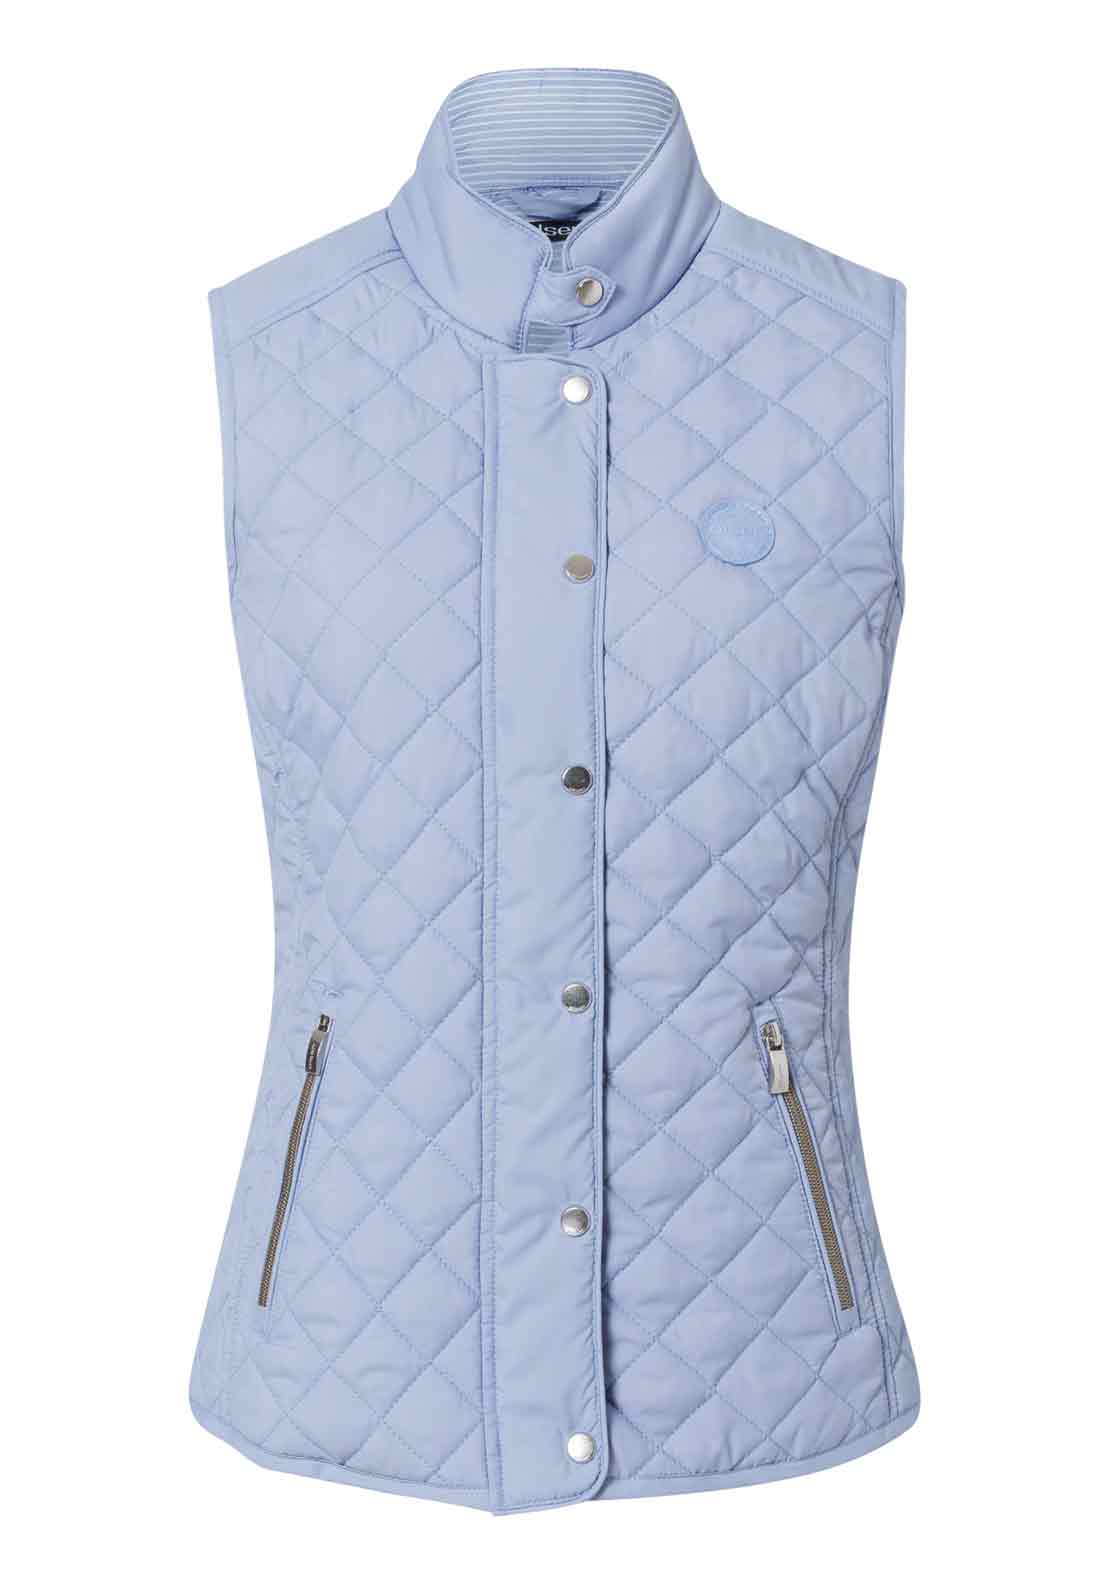 Olsen Diamond Quilted Gilet, Pale Blue